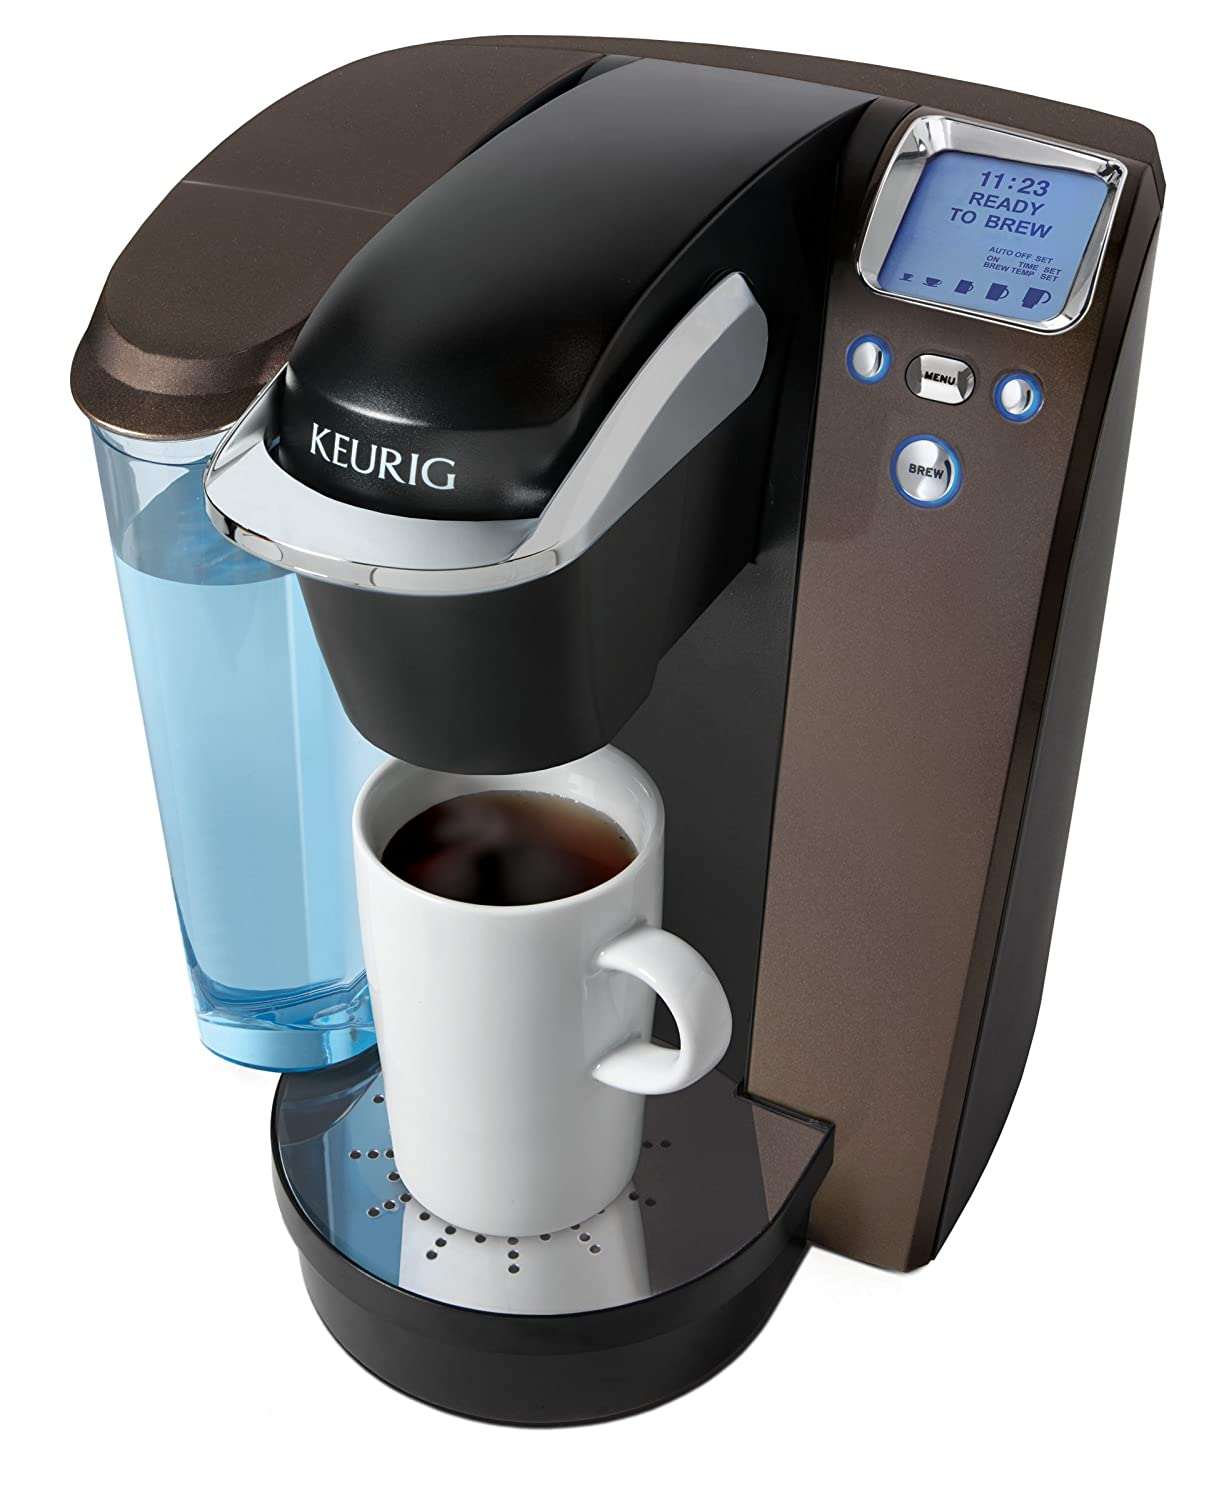 Keurig Coffee Maker Programmable : Keurig K75 Platinum Edition Coffeemaker Programmable Brewing System, Black eBay